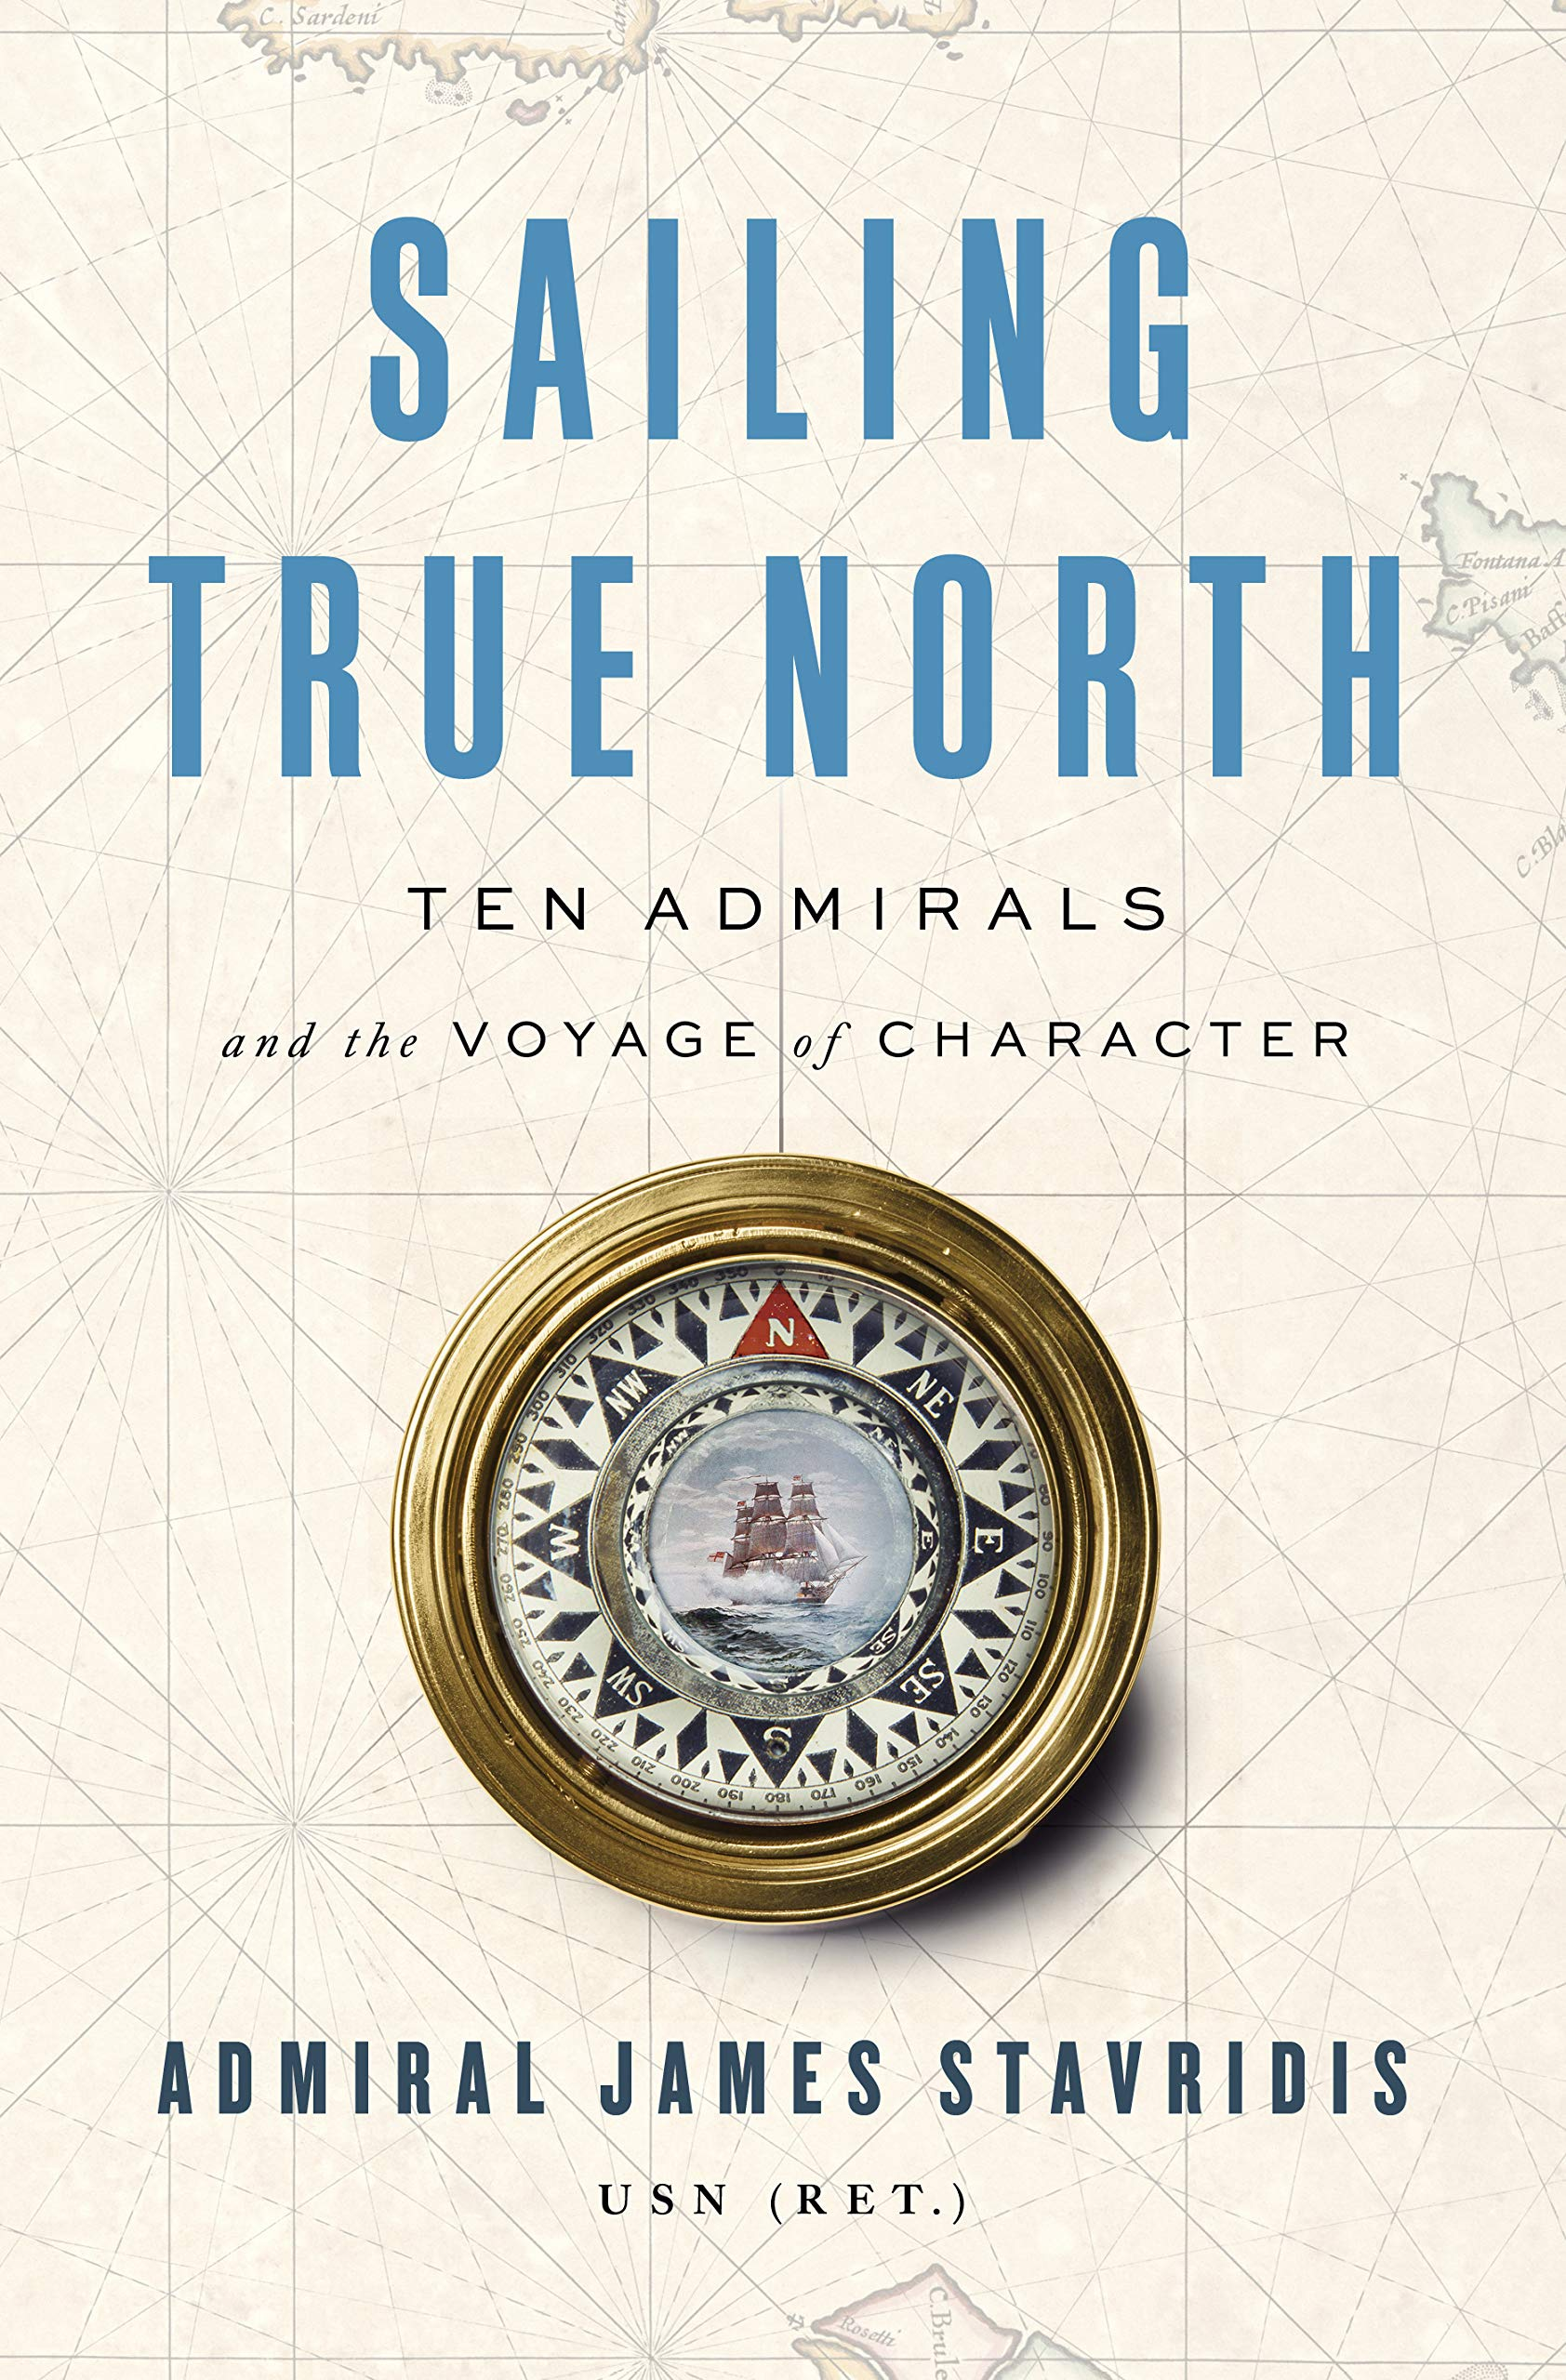 Sailing True North by James stavridis book cover.